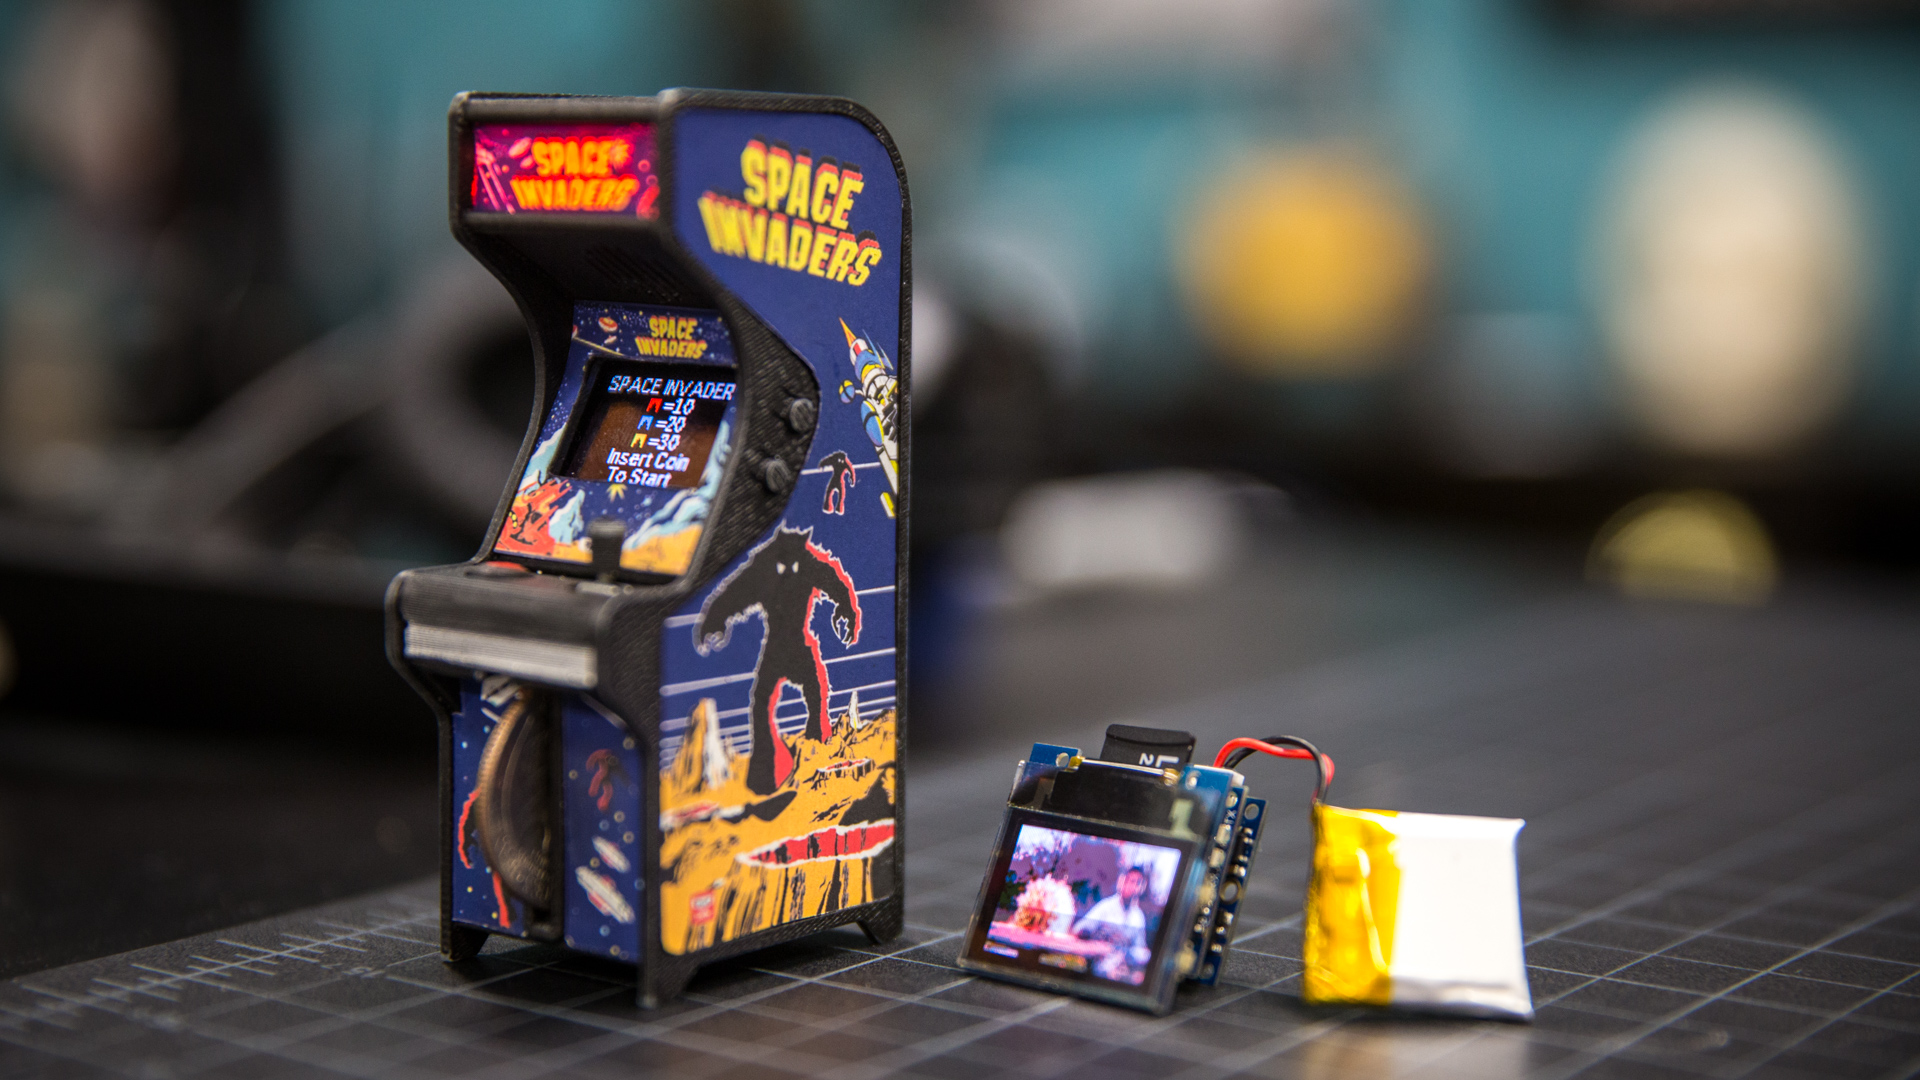 Tiny Arcade machines